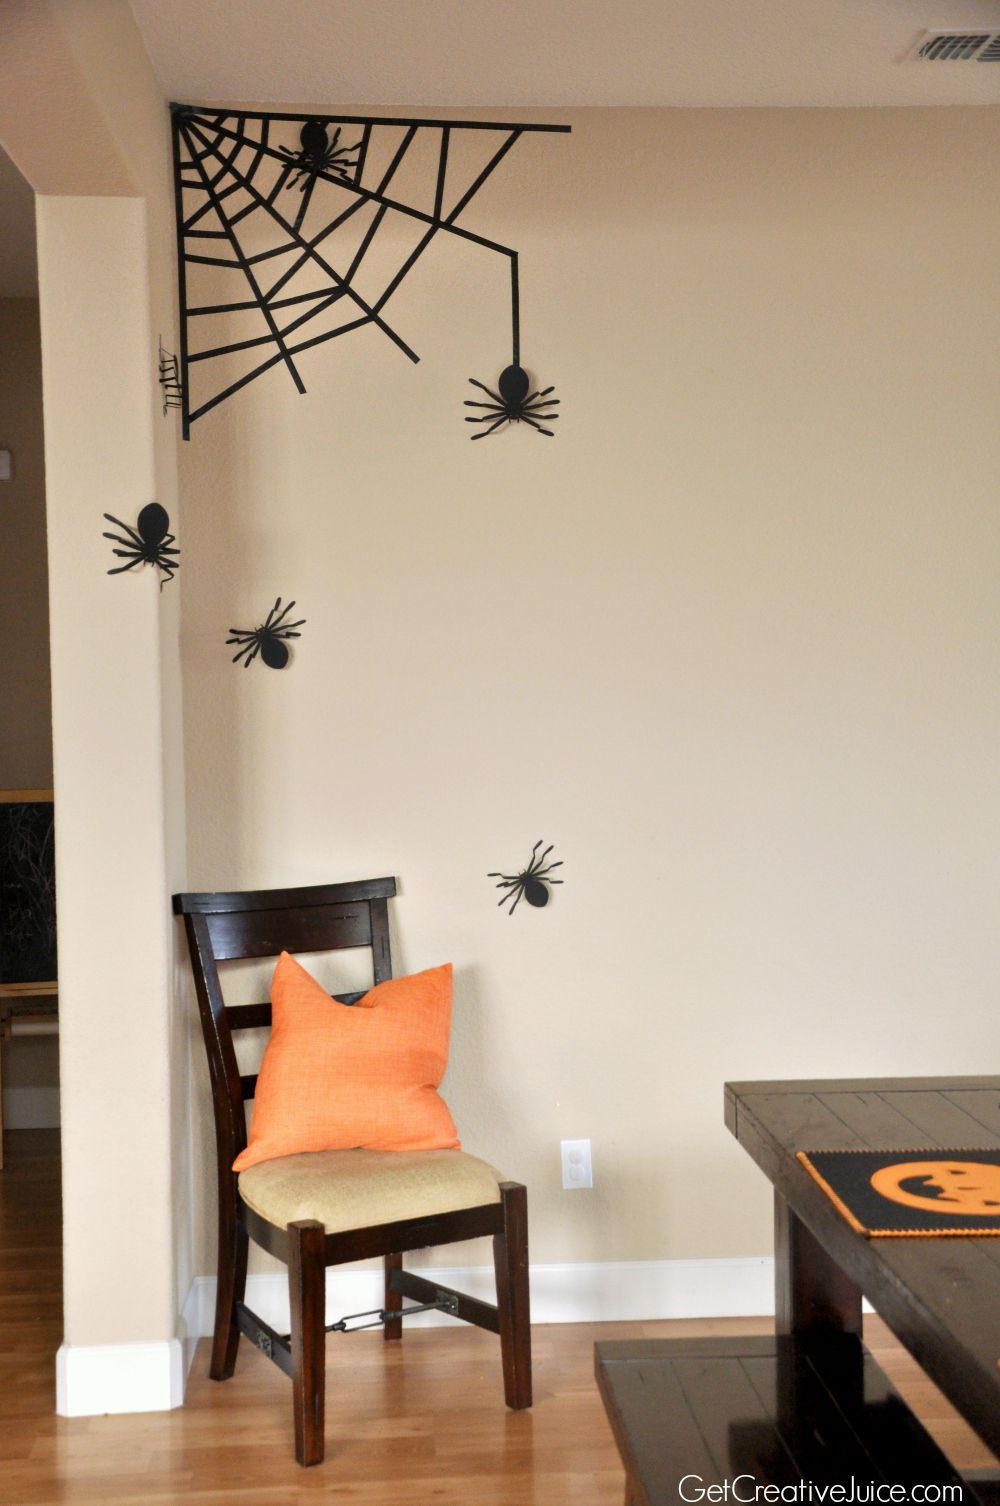 easy diy ideas for halloween decorations for your home washi tape spider web paper spiders easy tabletop decor halloween place settings - Cheap Halloween Decorating Ideas